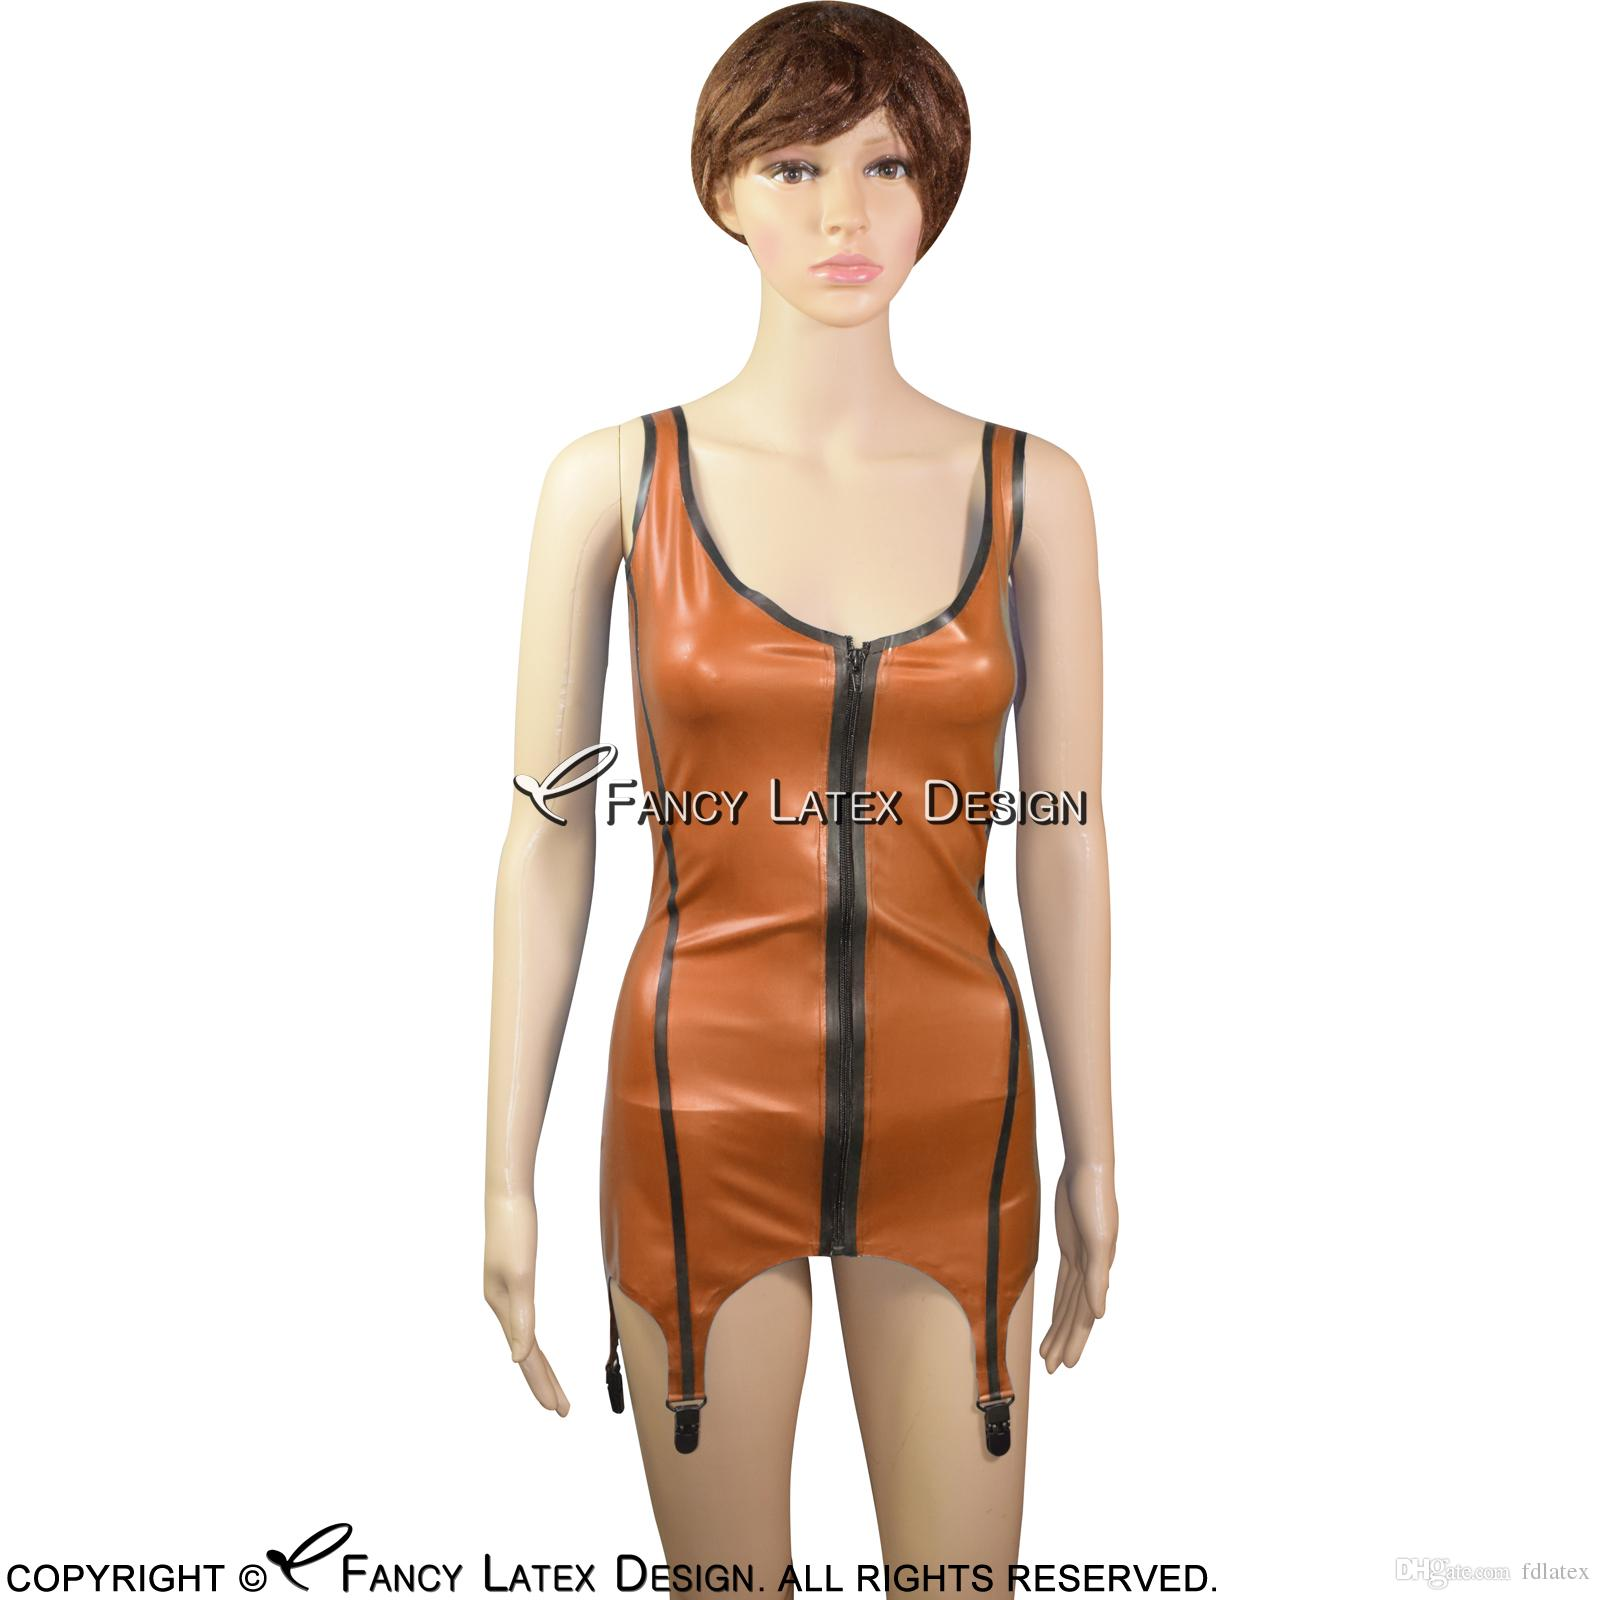 de4fe5c8366 Sexy Latex Top Tank Shirt Rubber Undershirts Top Singlet With Garters  Backless And Front Zipper YF 0034 Lace Panties And Bras Bustiers And  Corsets From ...